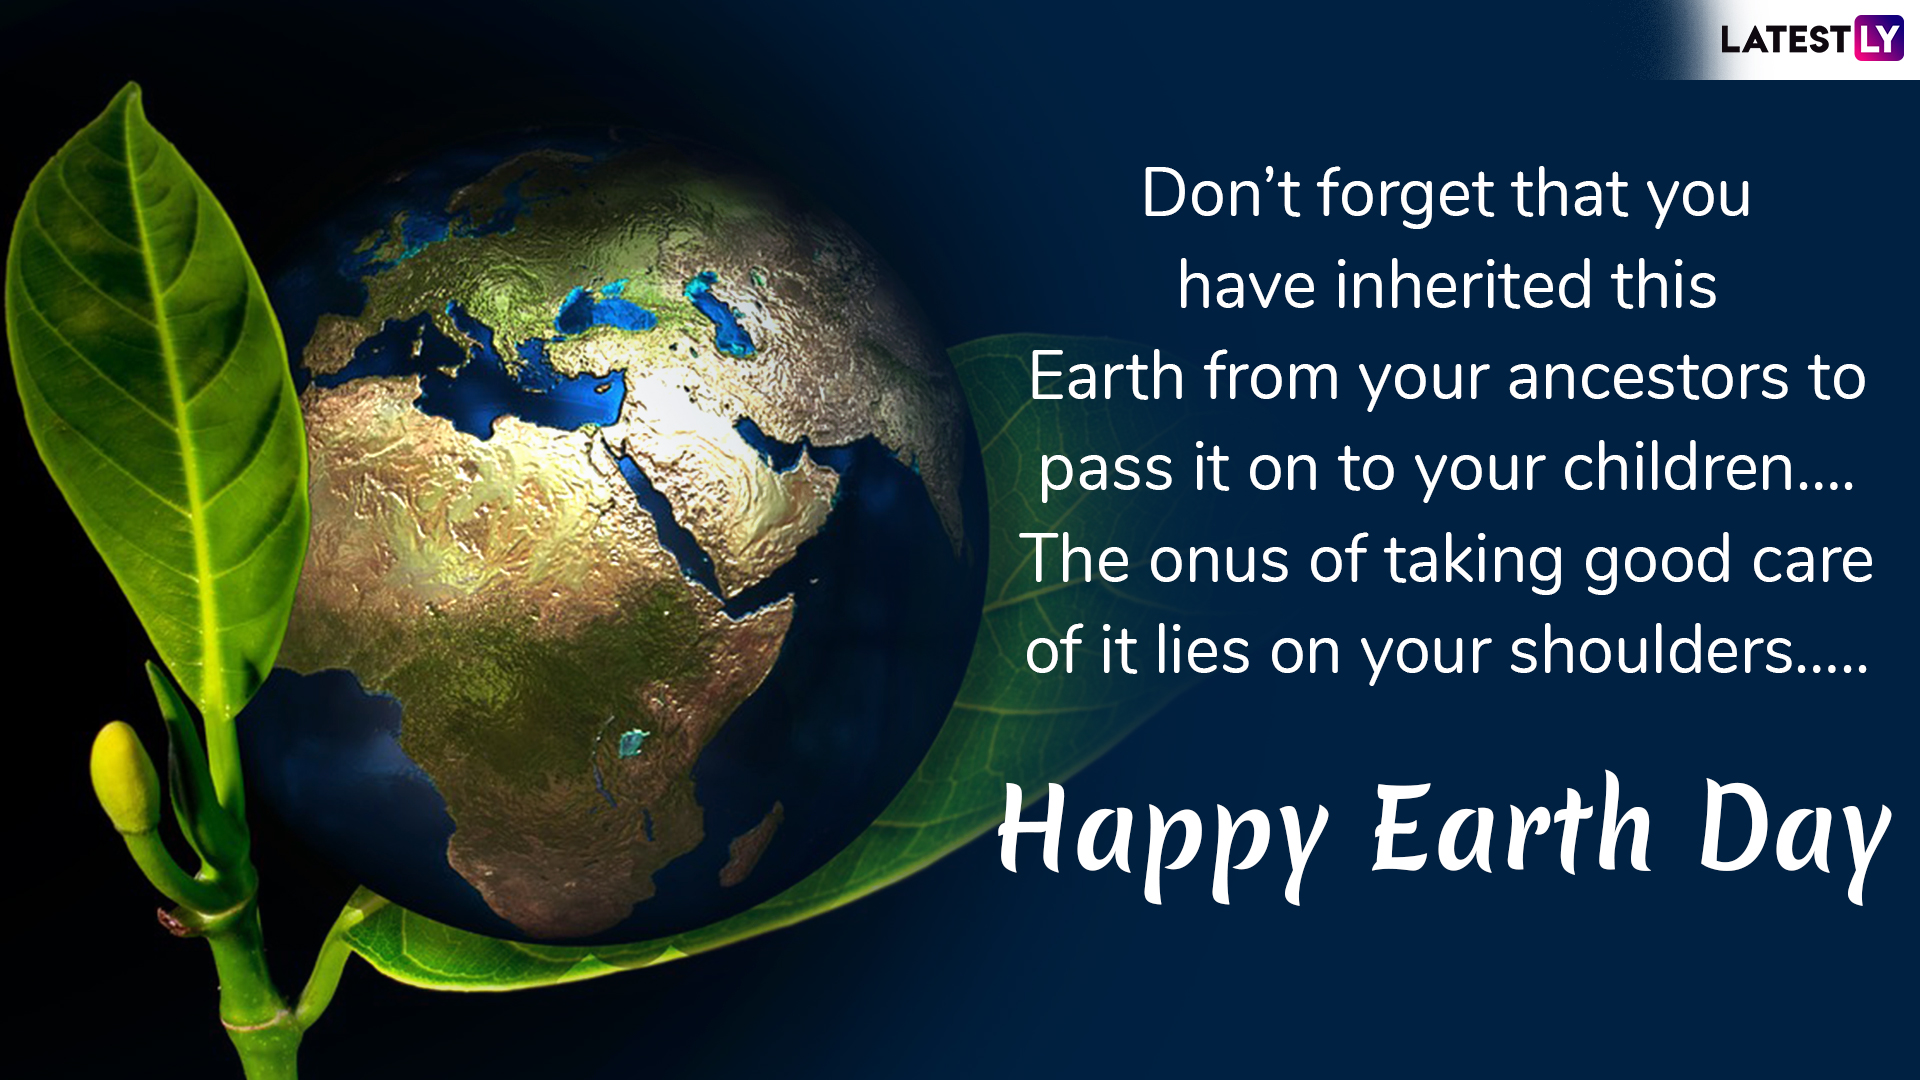 Re: Earth Day 4/22/2019